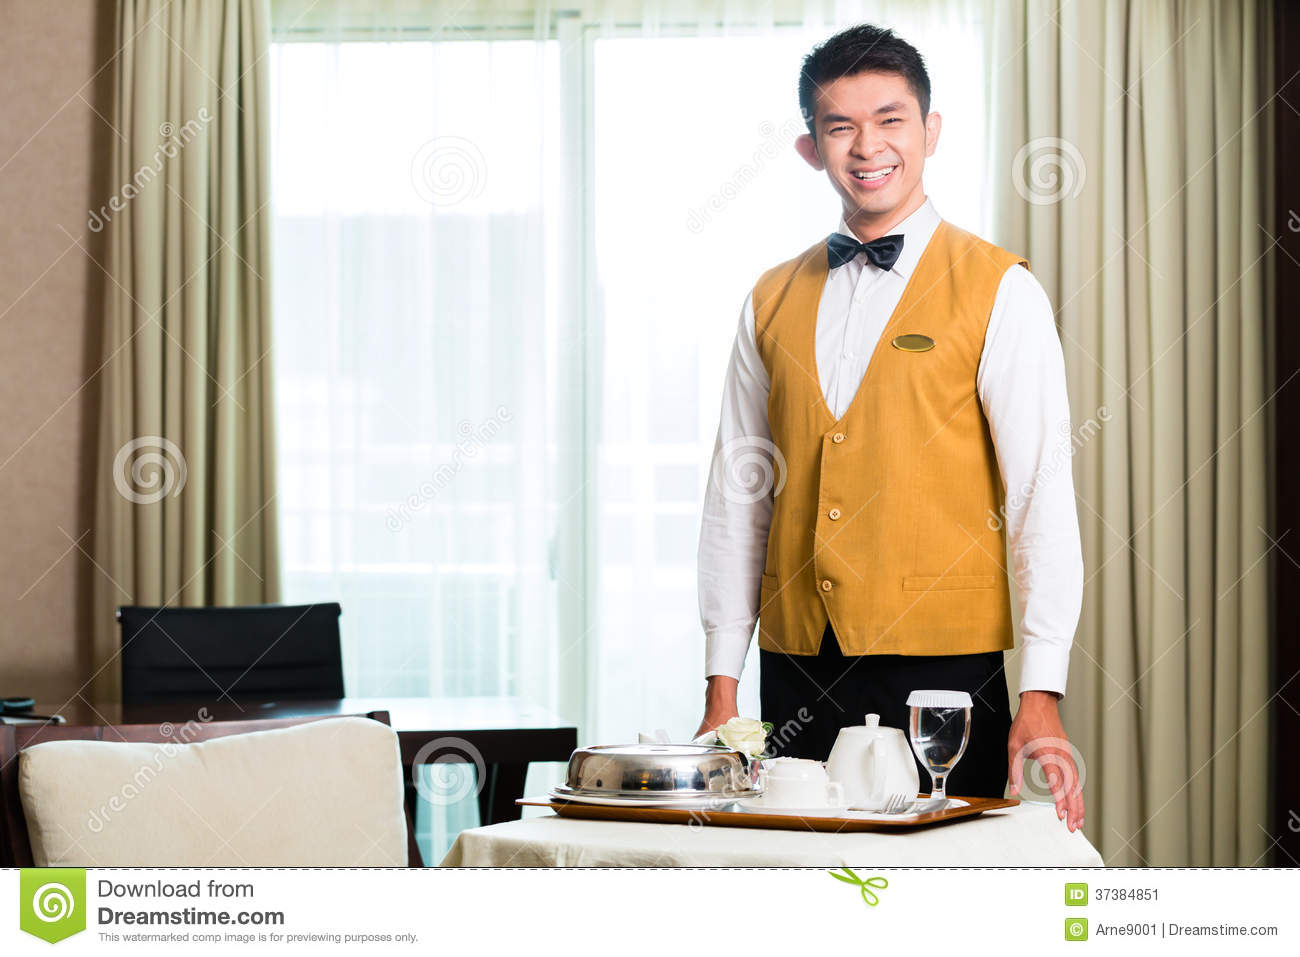 Room Service: Asian Chinese Room Service Waiter Serving Food In Hotel